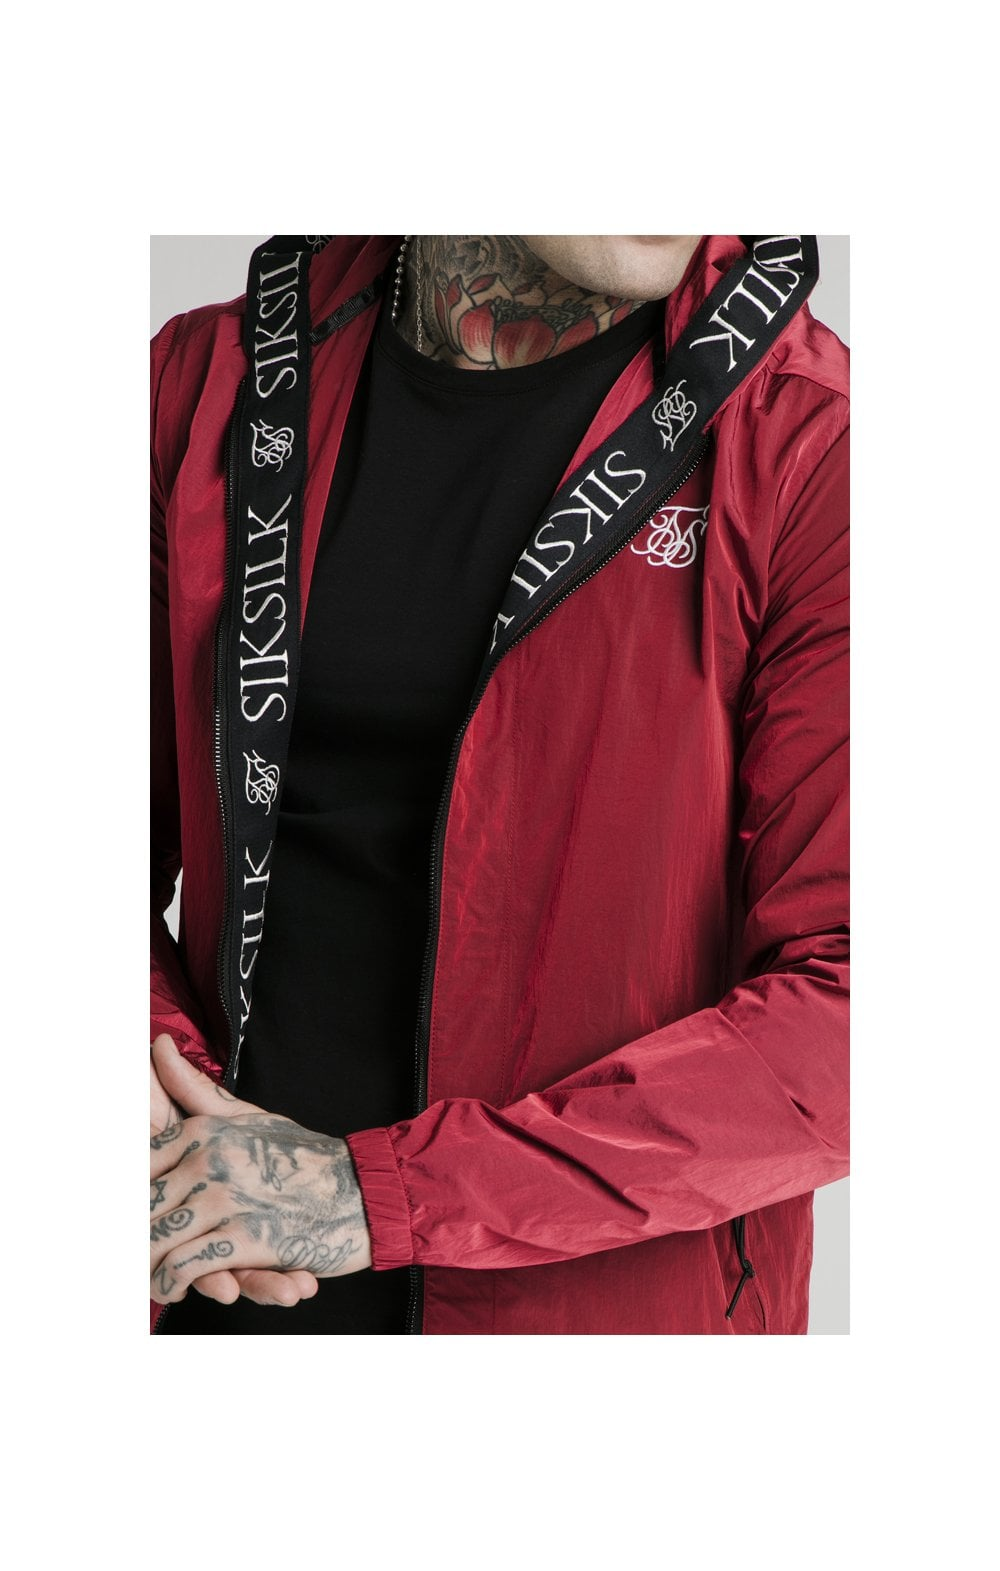 SikSilk Zip Through Windbreaker Jacket - Red (1)